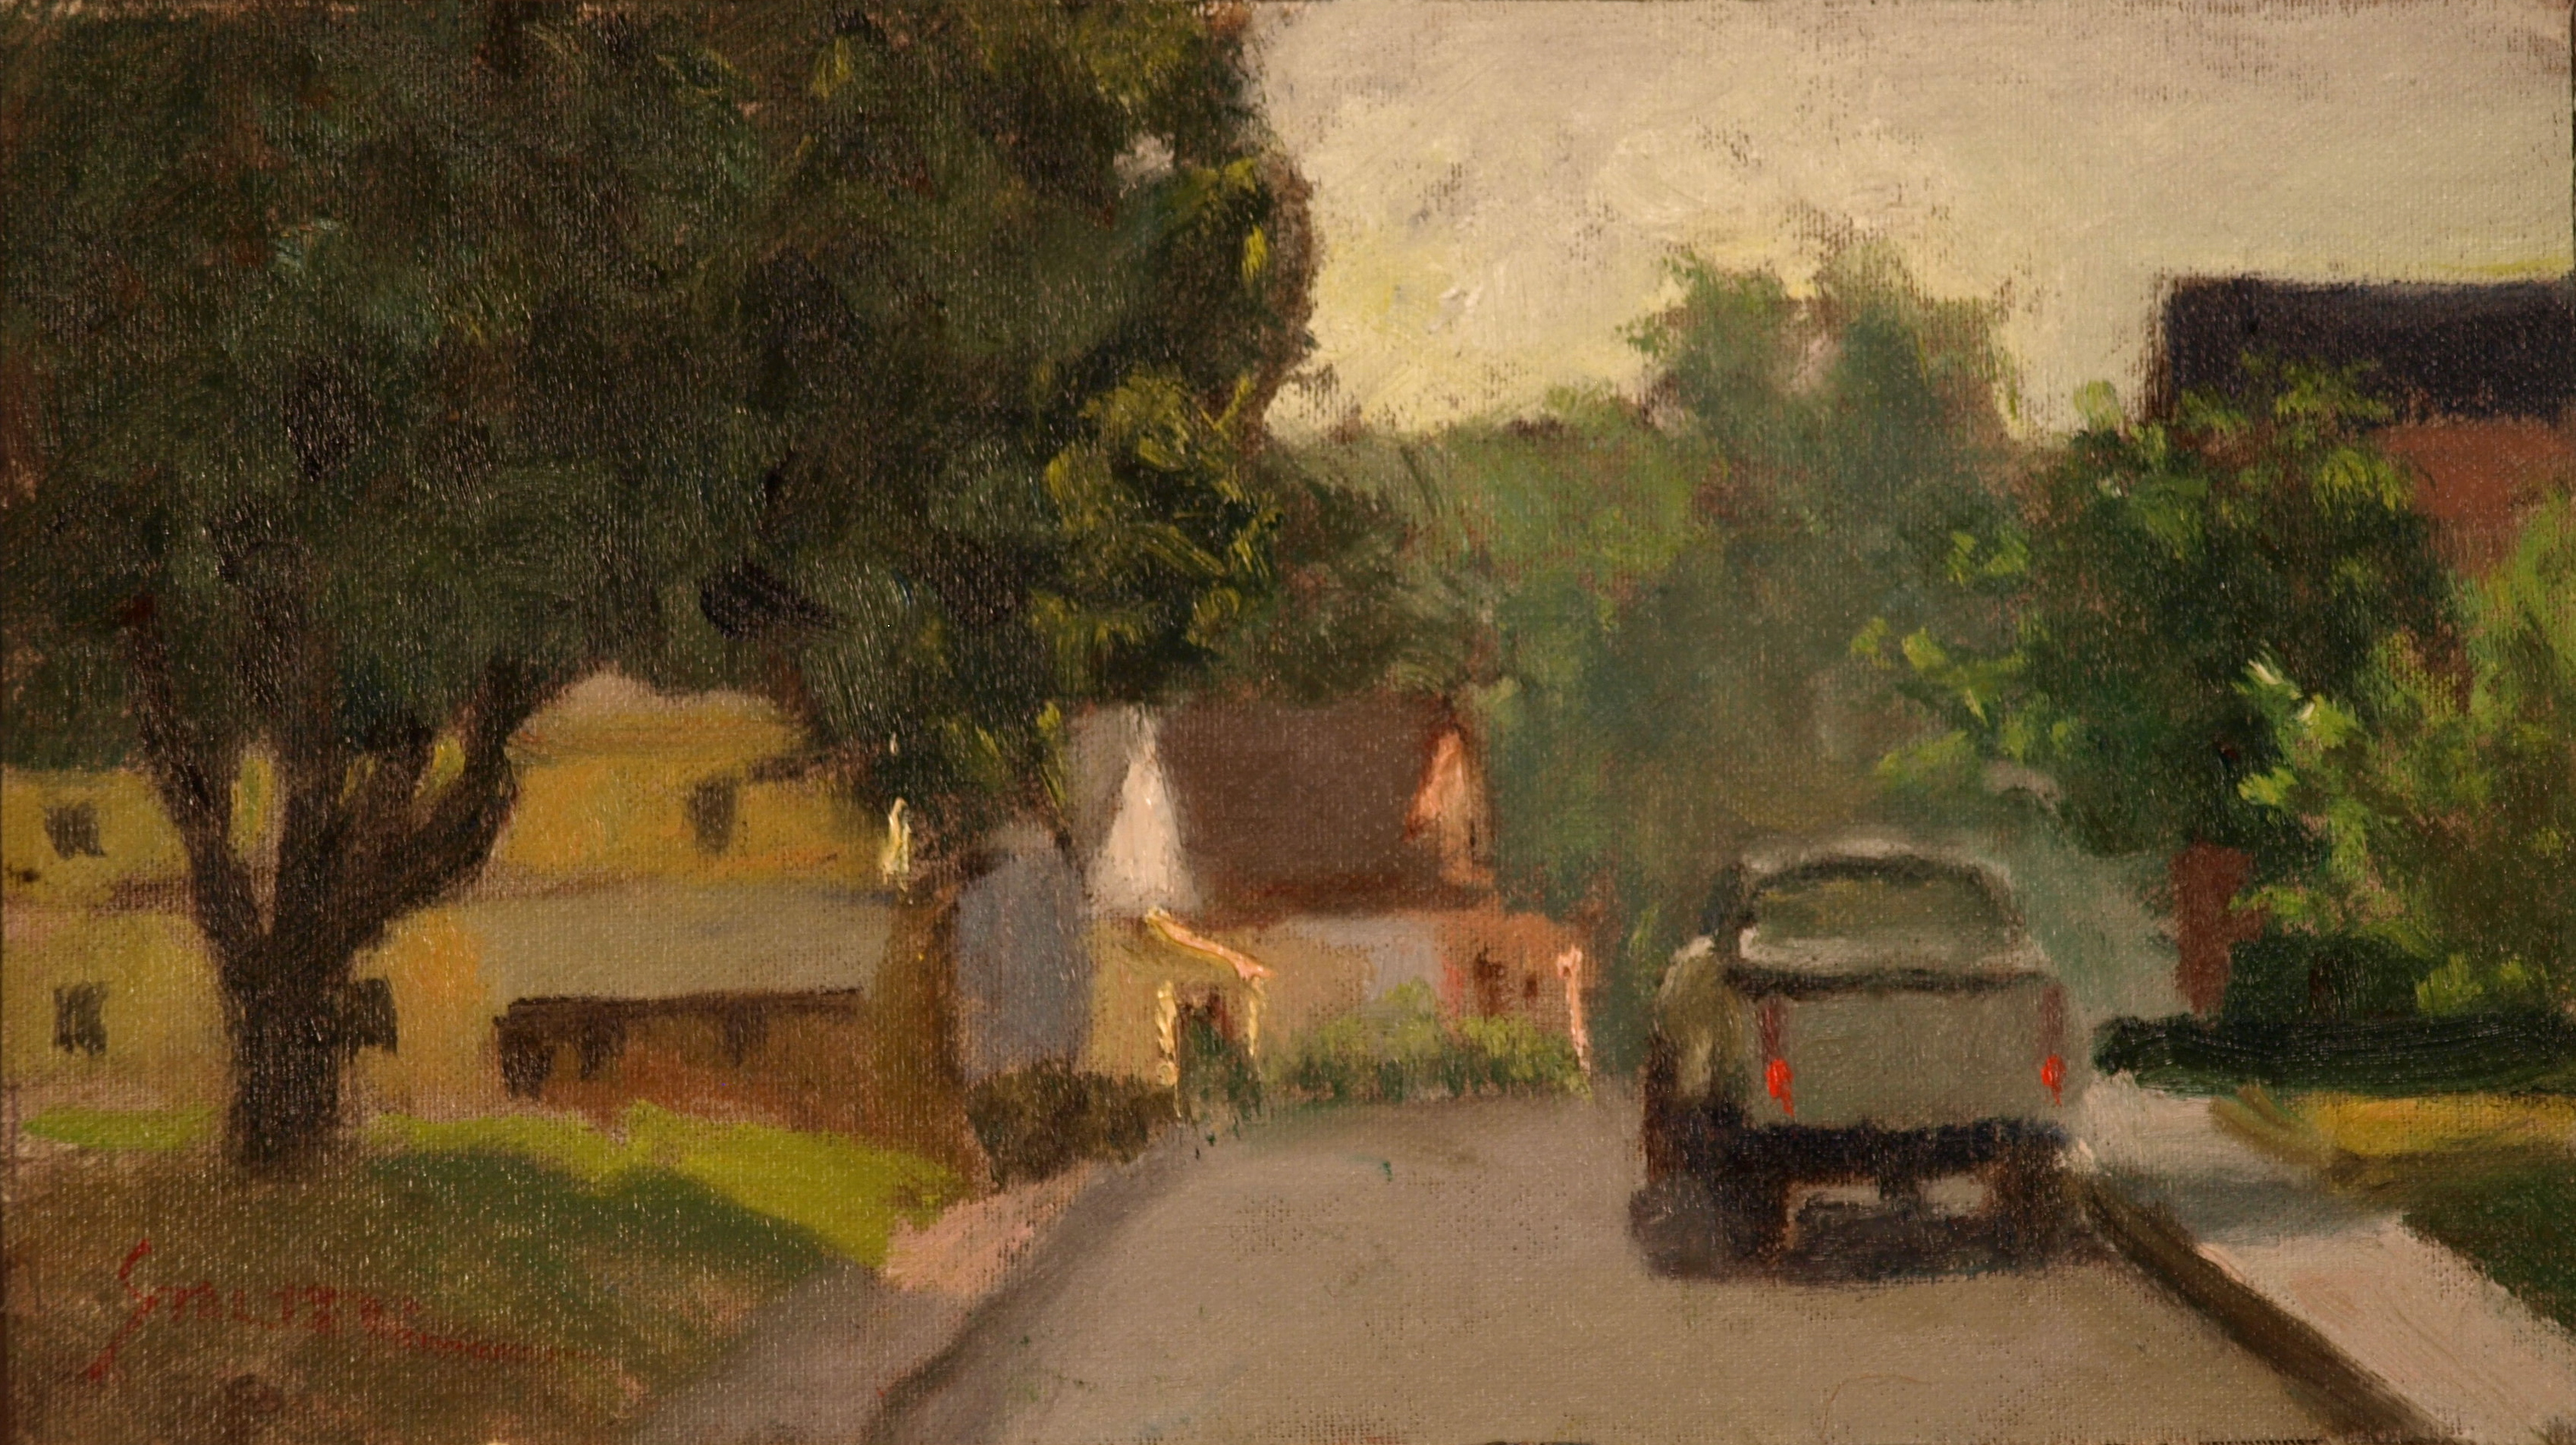 Whittlesee Avenue, Oil on Canvas on Panel, 8 x 14 Inches, by Richard Stalter